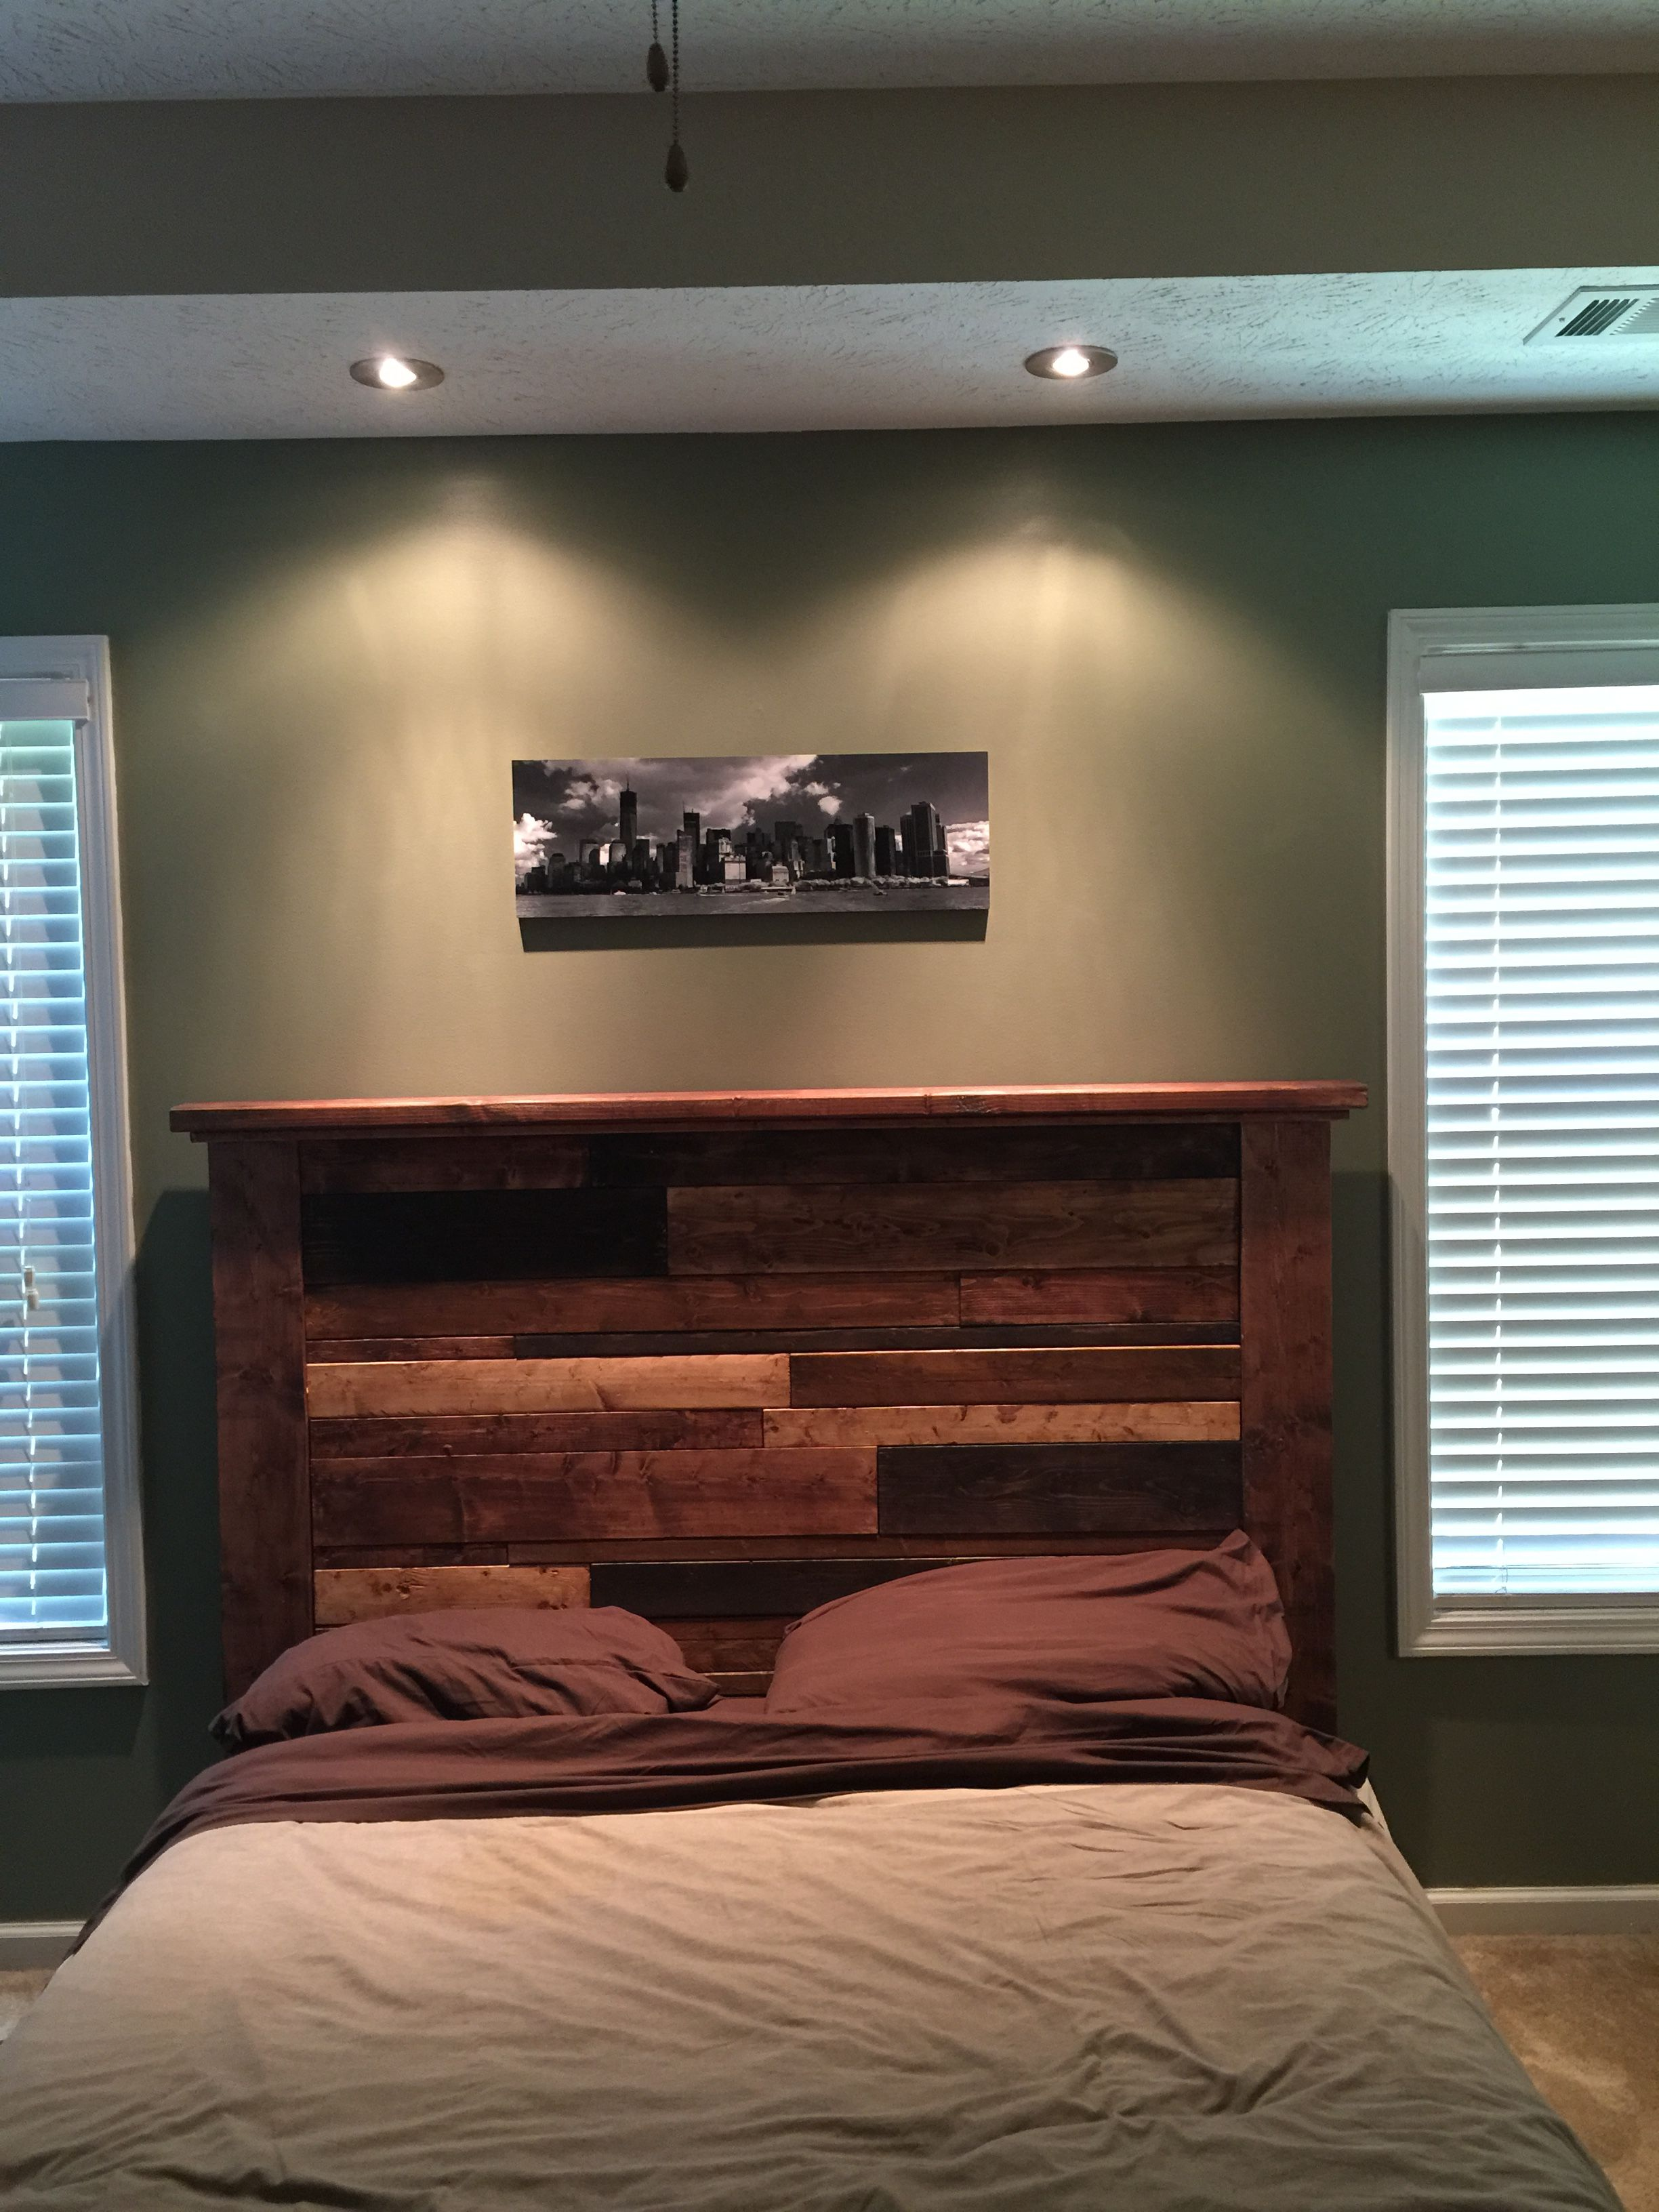 New platform bed with headboard. Added some recessed